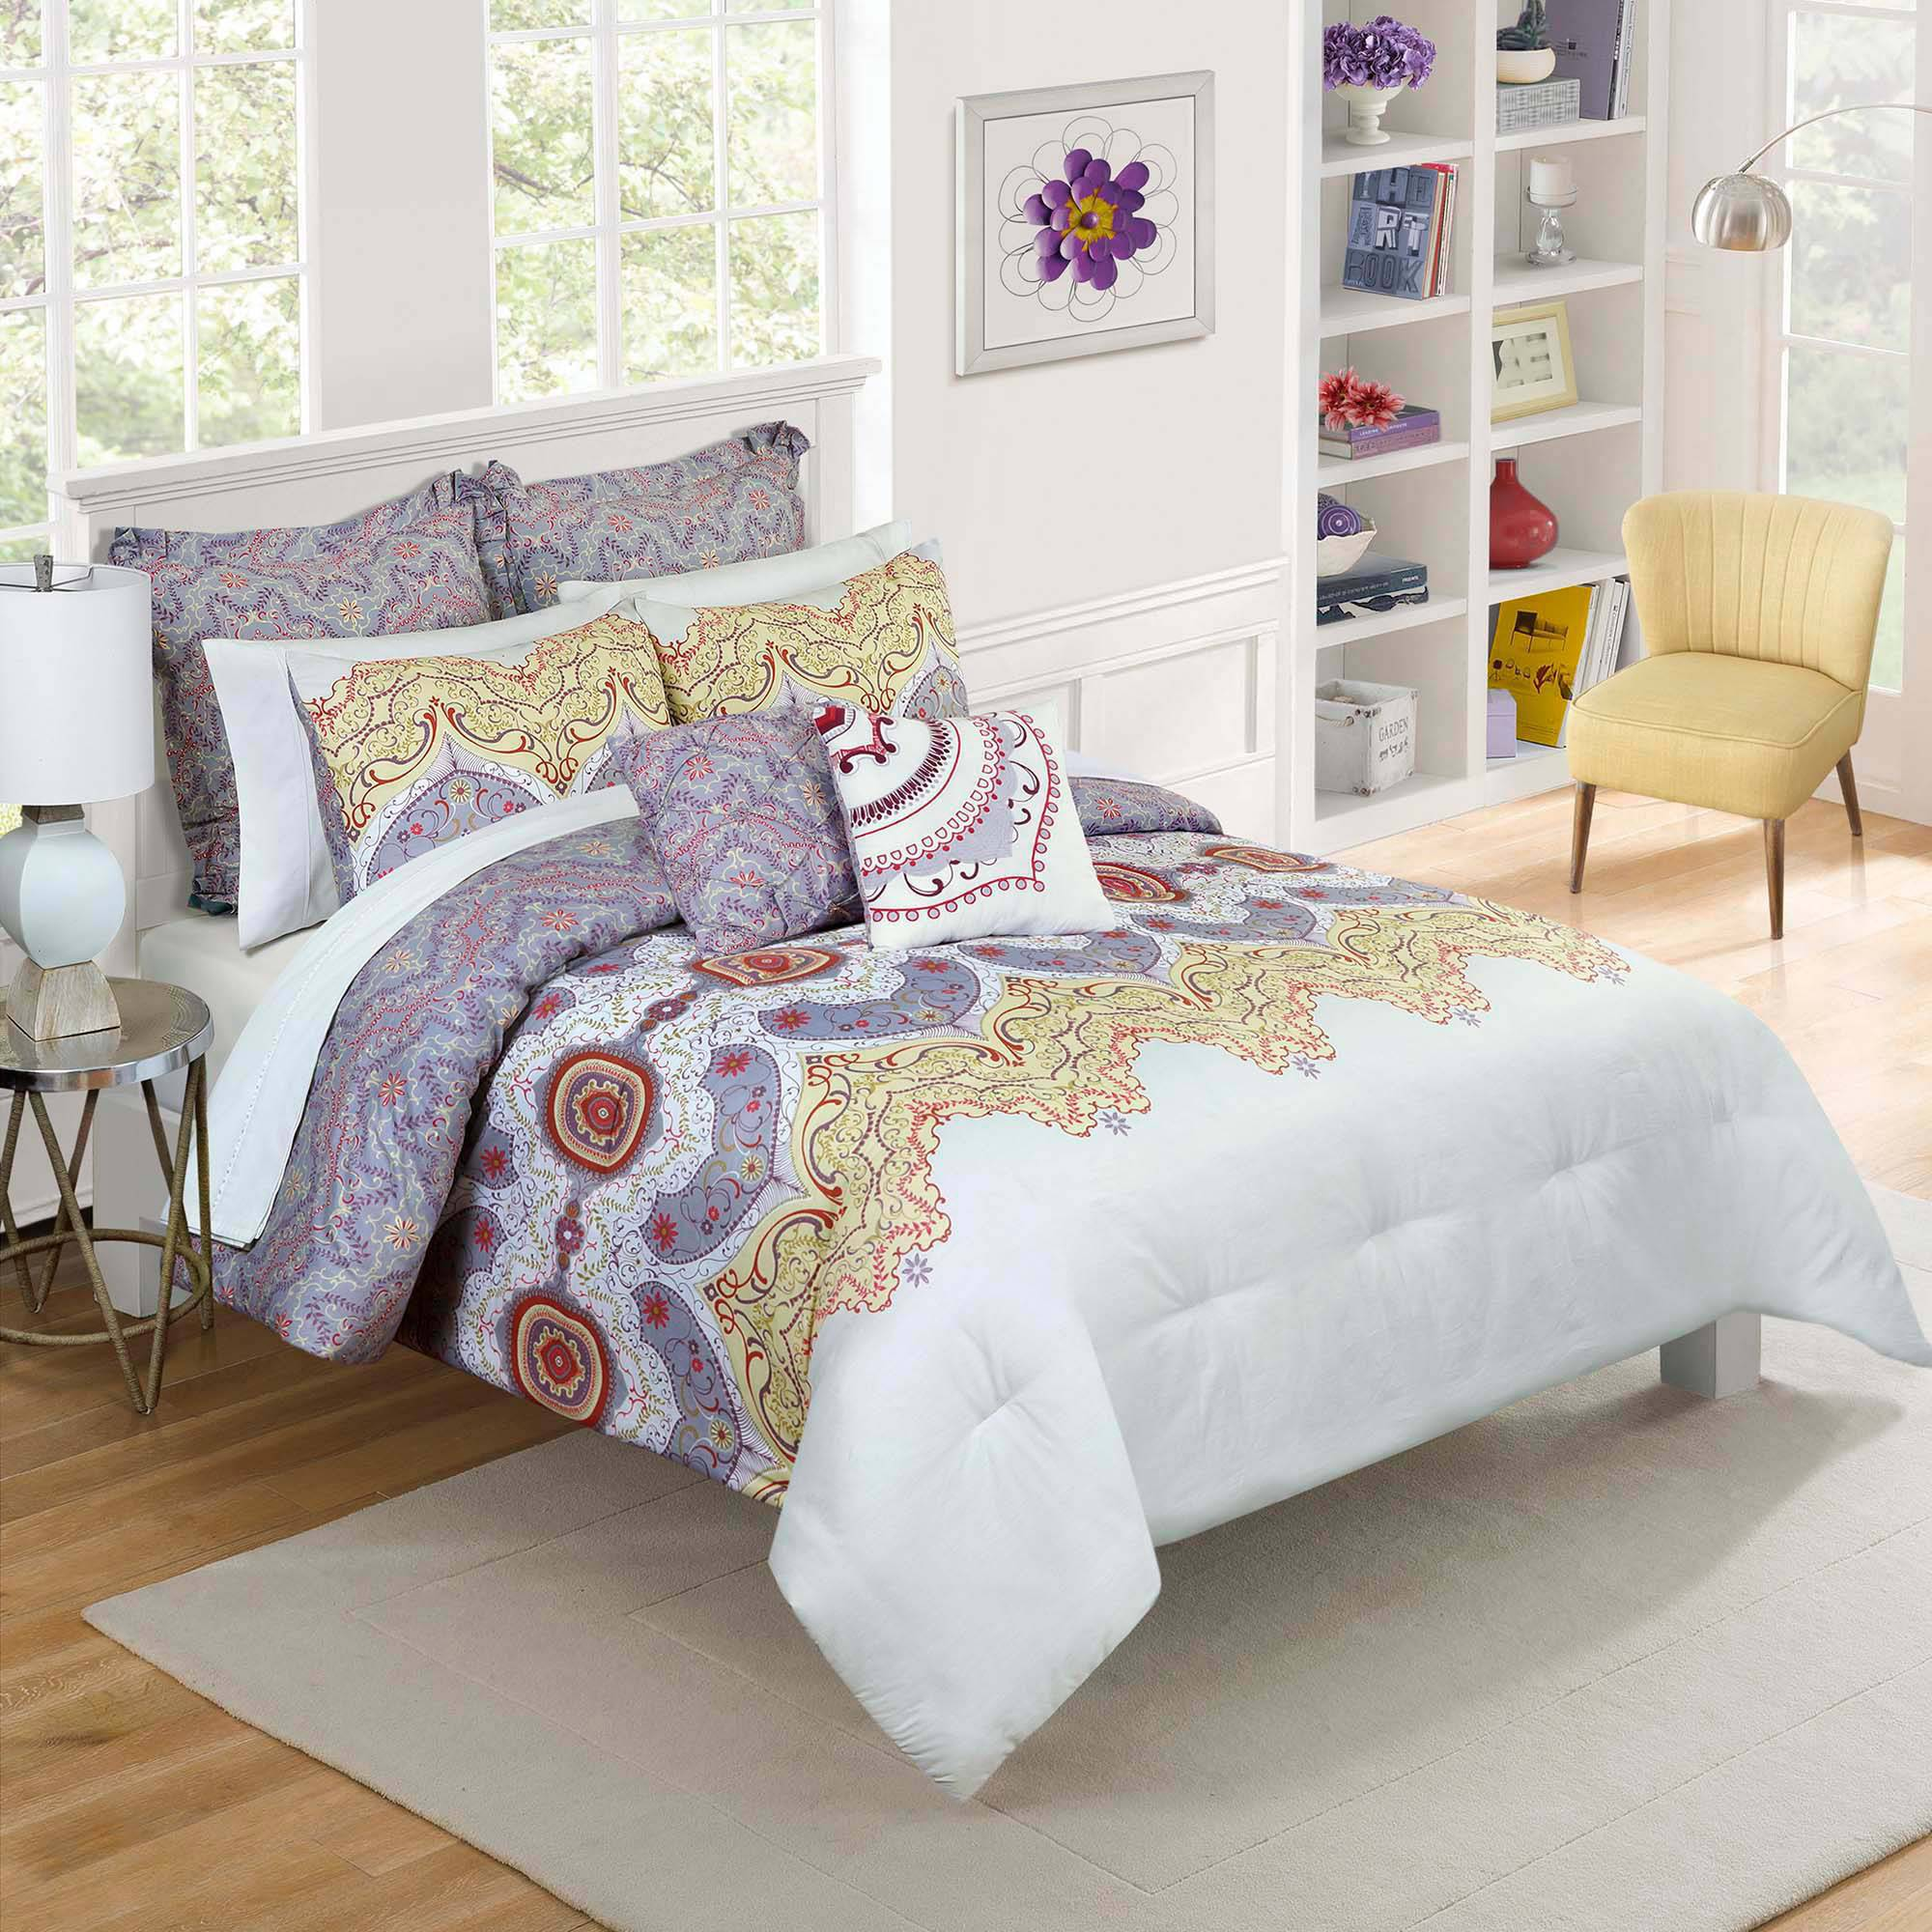 for dorm set comforters pin long mantra comforter products extra college pay expect multicolored more beddingcollege less vue twin